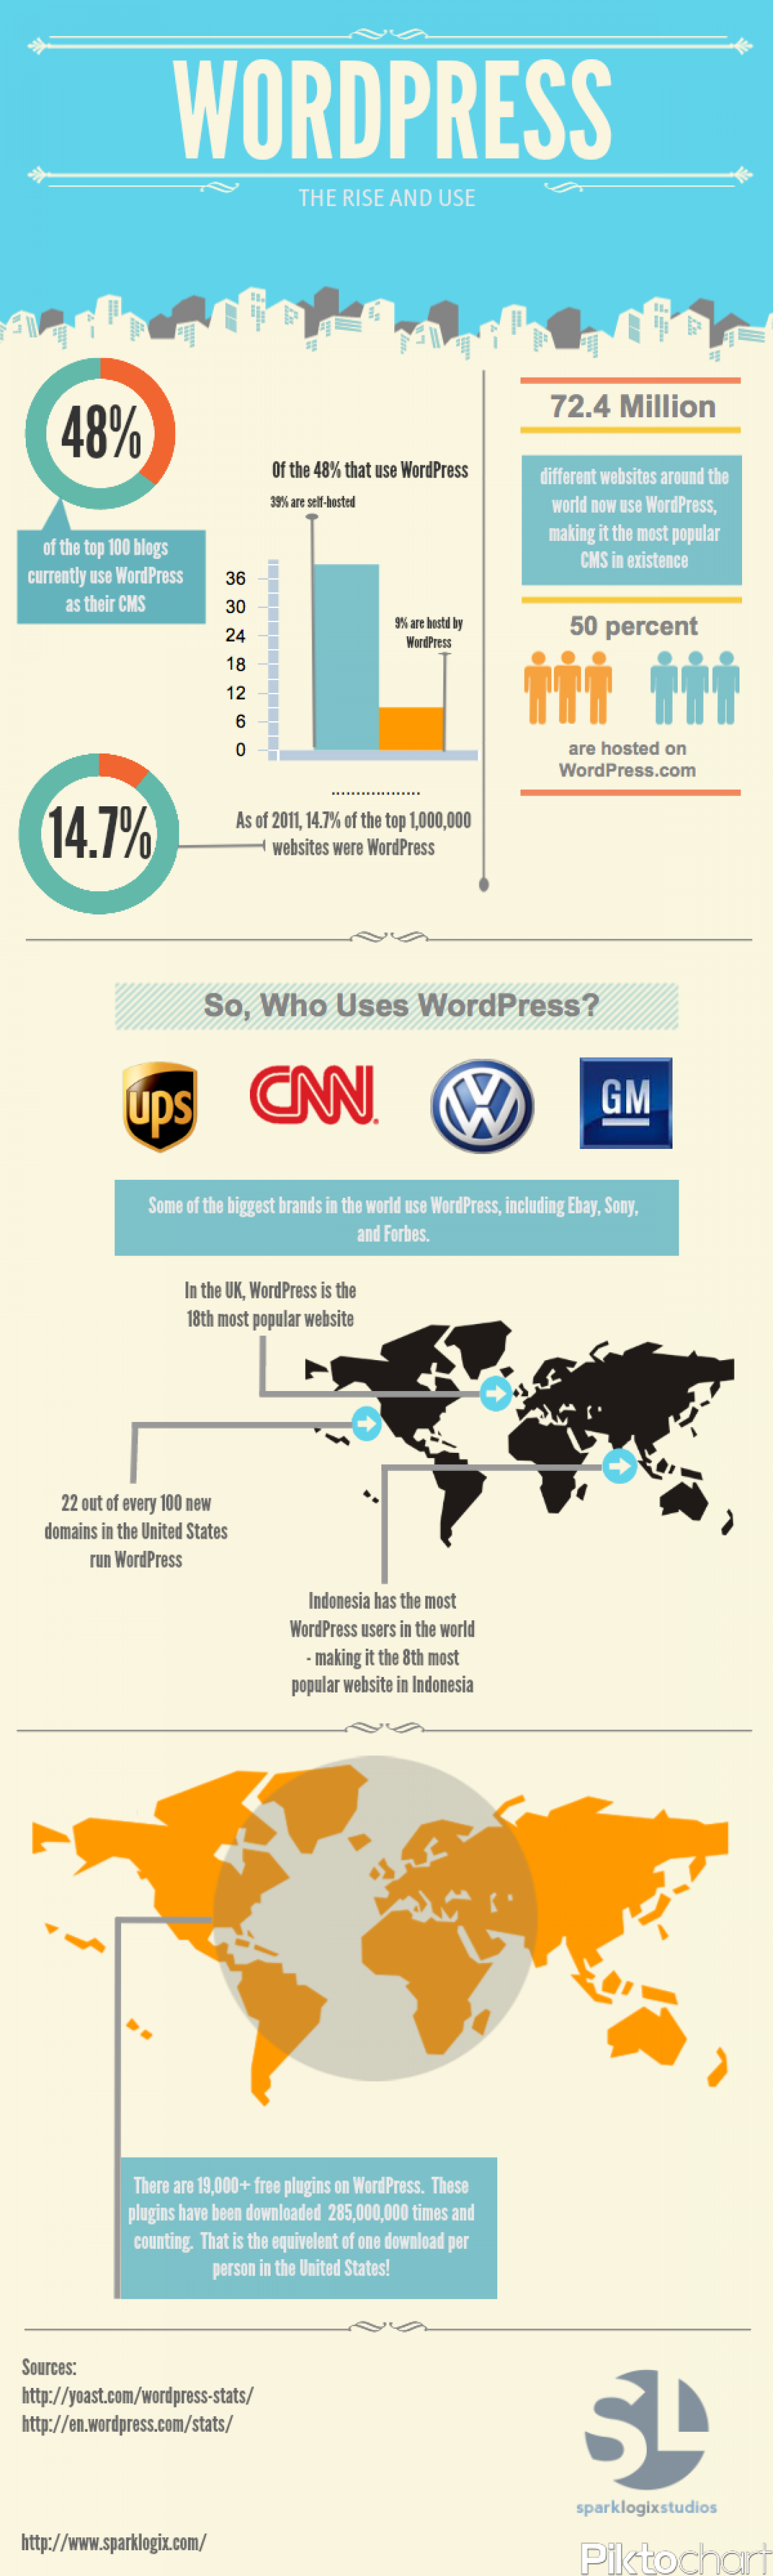 WordPress Usage Infographic